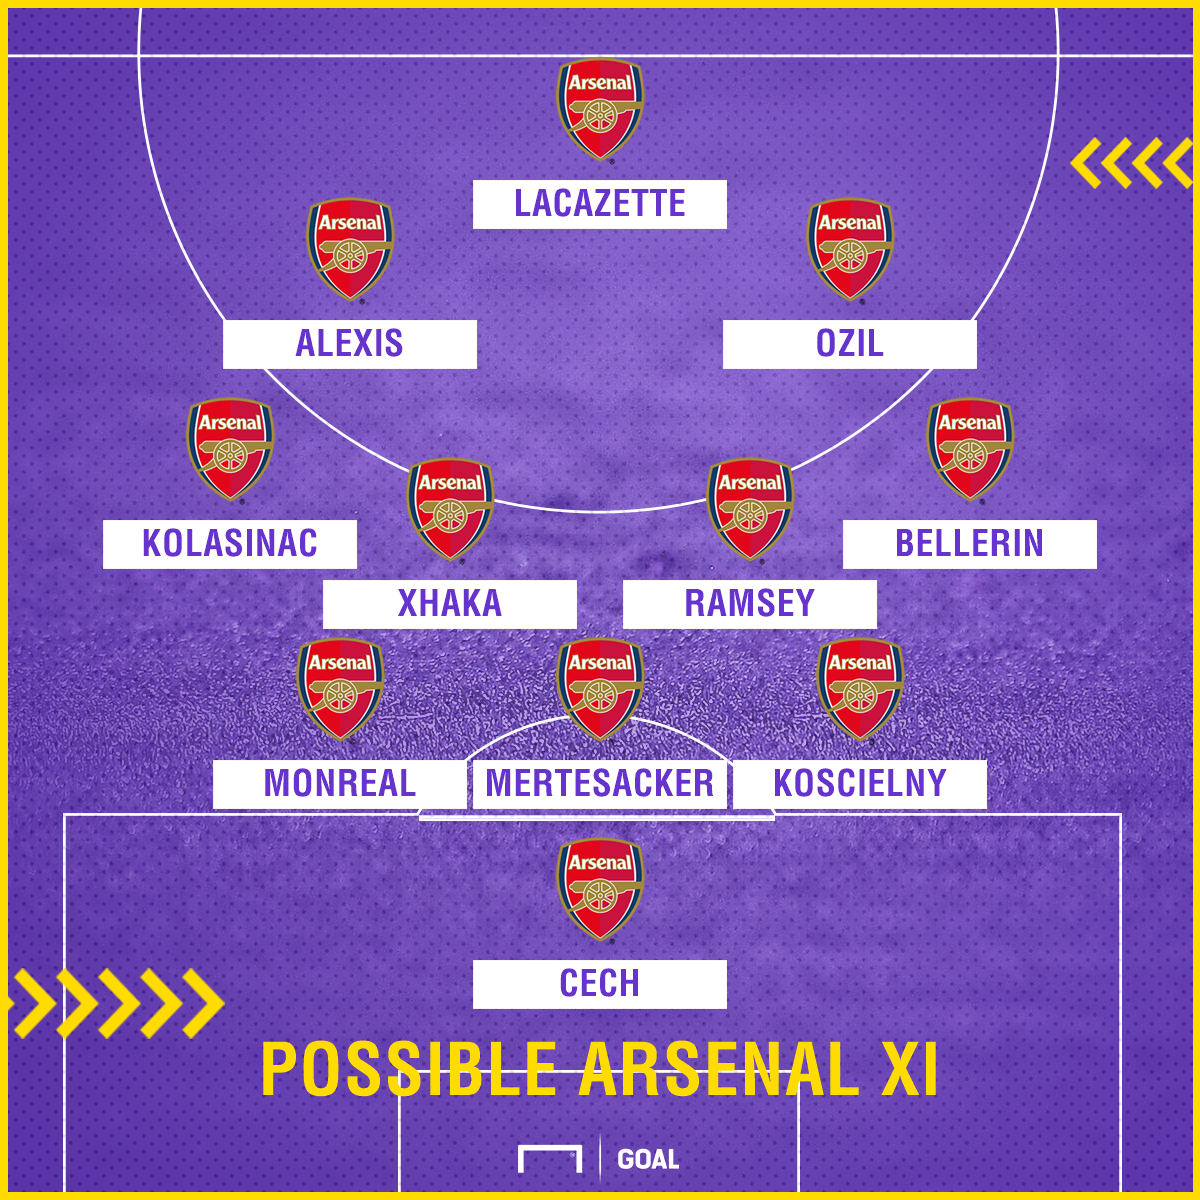 Arsenal Team News Injuries Suspensions And Line Up Vs Manchester City Goal Com